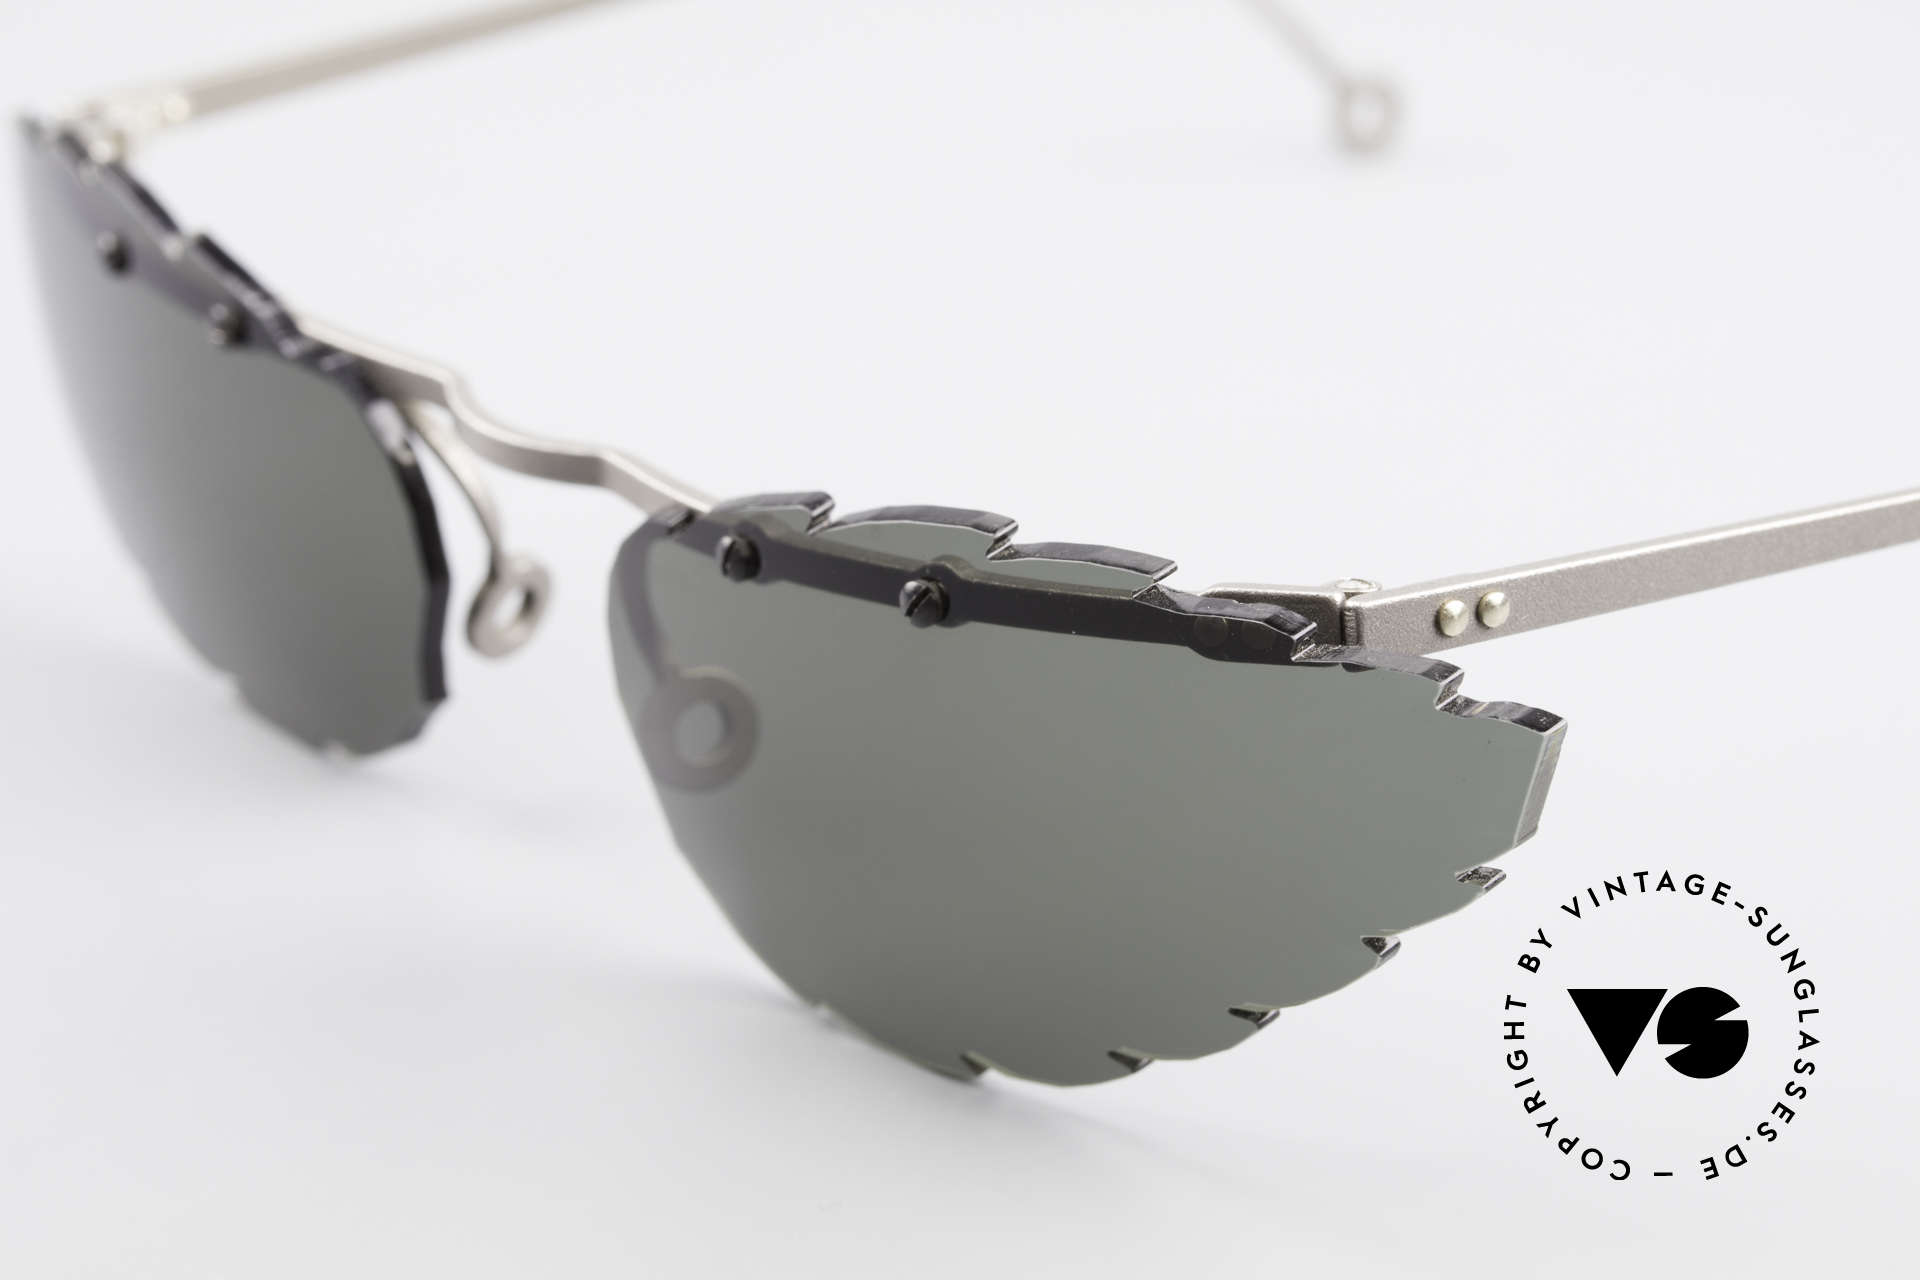 Theo Belgium Asis Lenses shaped like a leaf, ASIS SERIES from 1993 = lenses are shaped like a leaf, Made for Men and Women